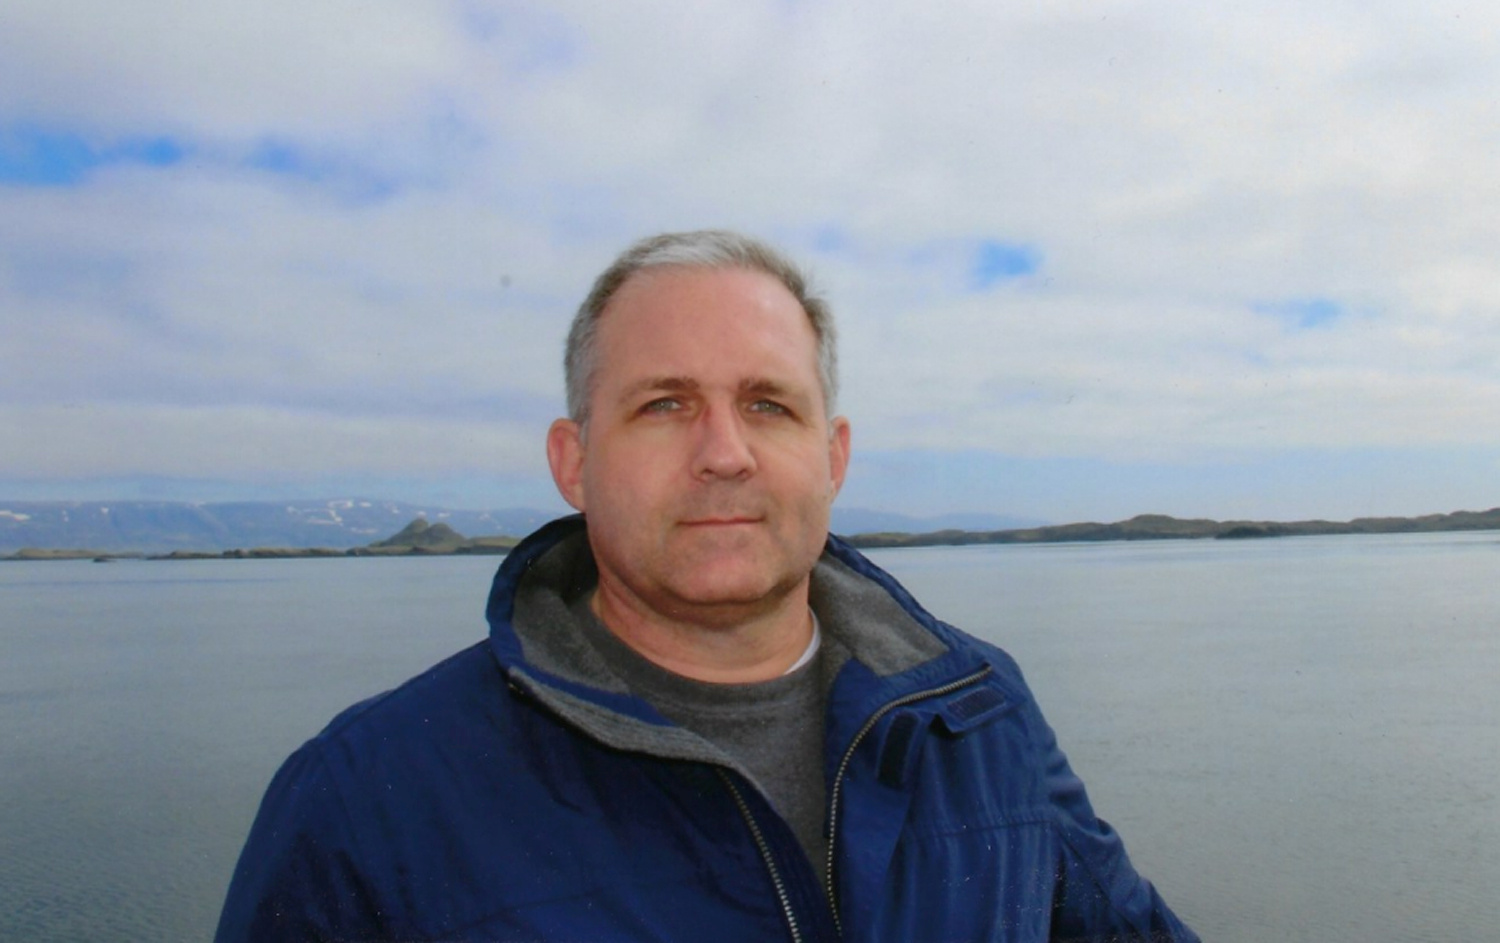 Paul Whelan, a U.S. citizen detained in Russia for suspected spying, appears in a photo provided by the Whelan family on January 1, 2019. Courtesy Whelan Family/Handout via REUTERS